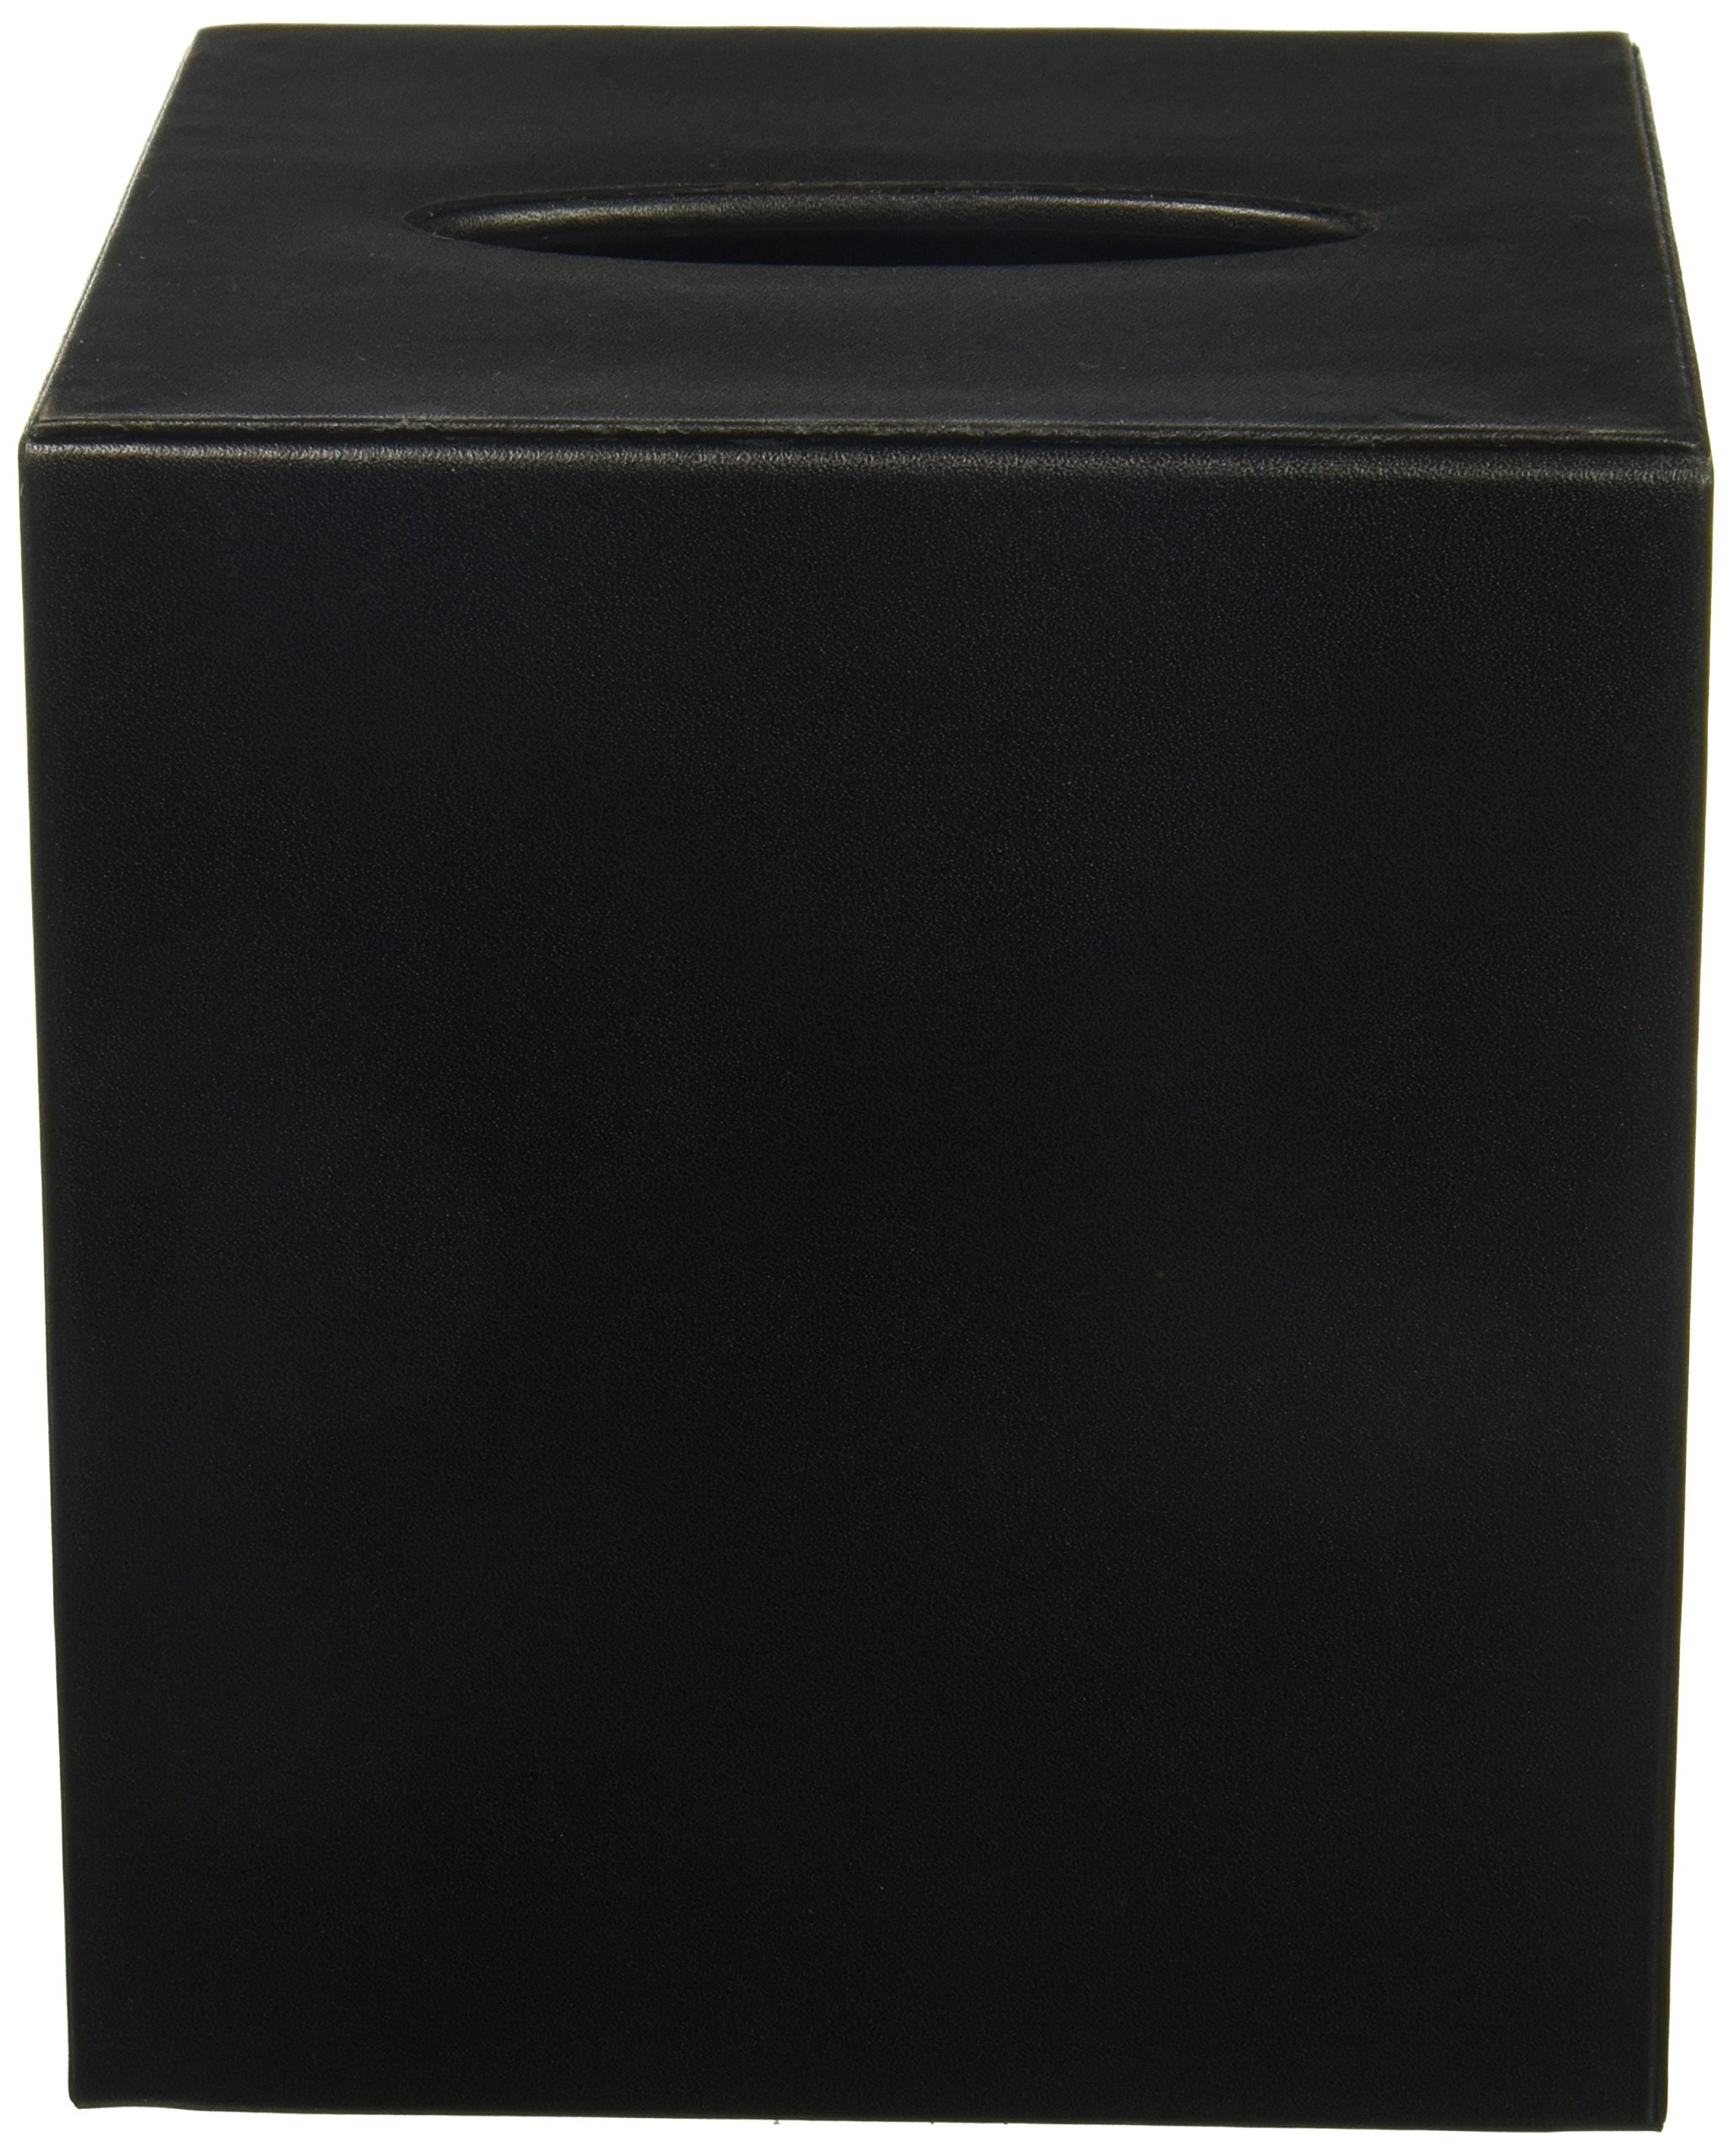 Dacasso Leather Tissue Box Cover, Classic Black (A1037)